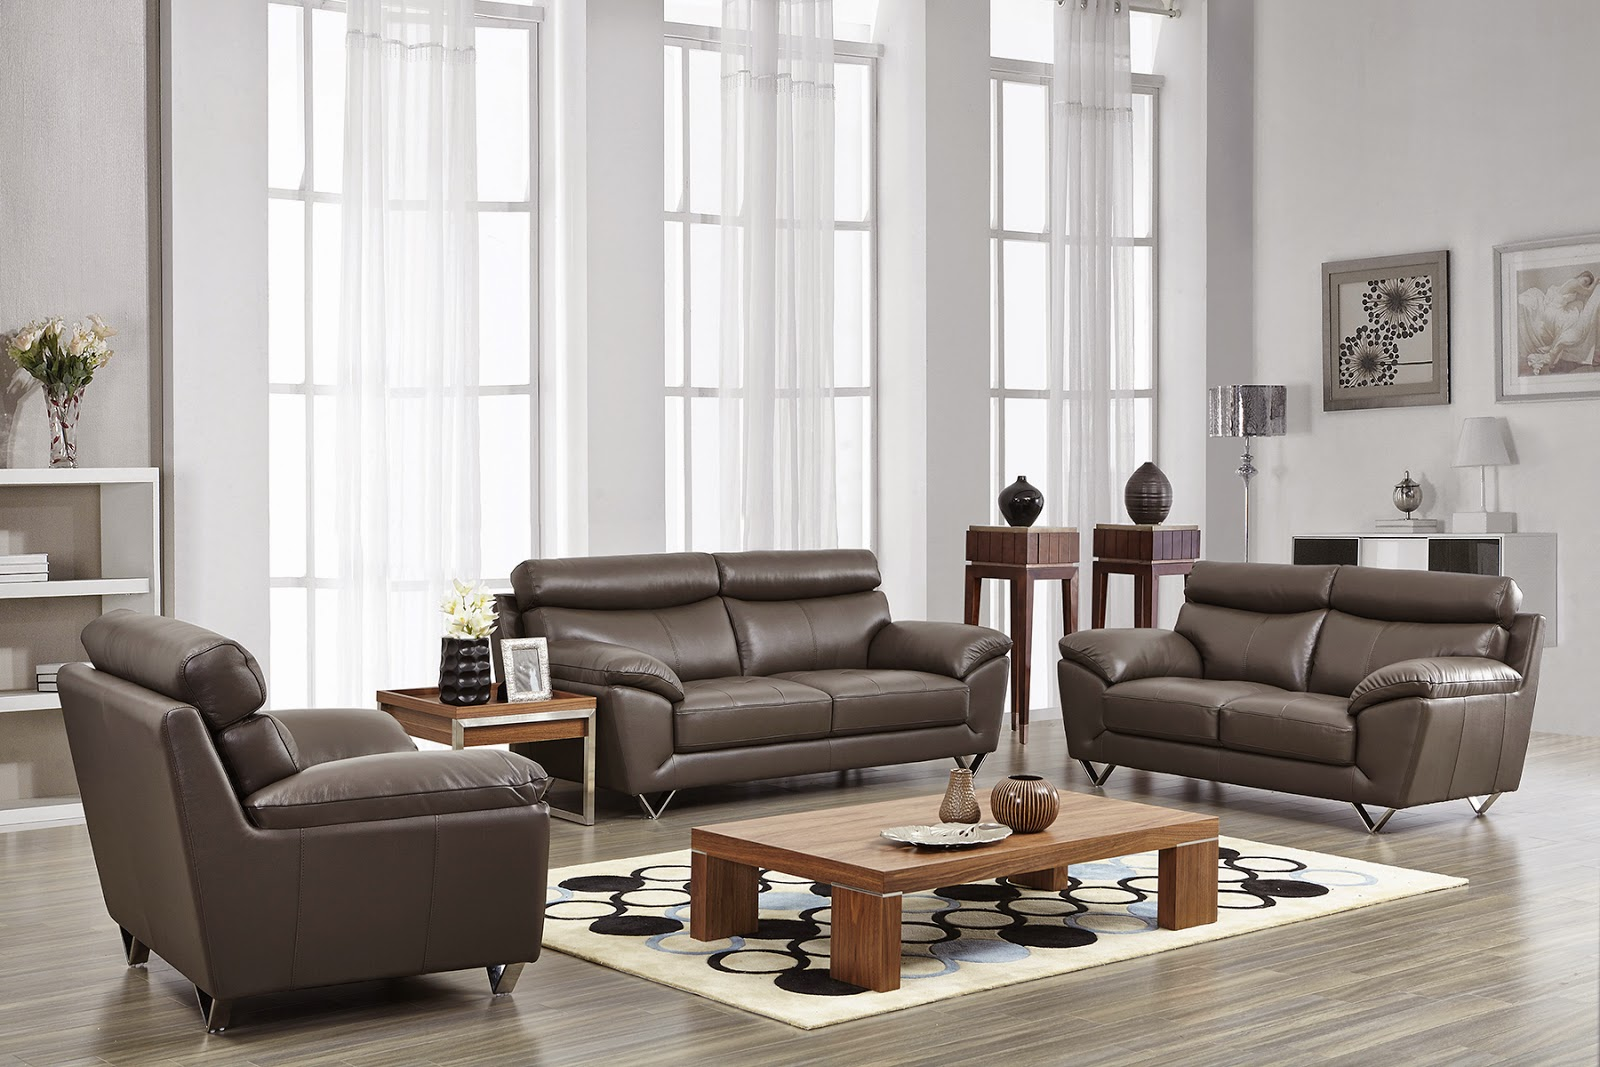 finest dco rideaux salon moderne simple metz downtown spa. Black Bedroom Furniture Sets. Home Design Ideas